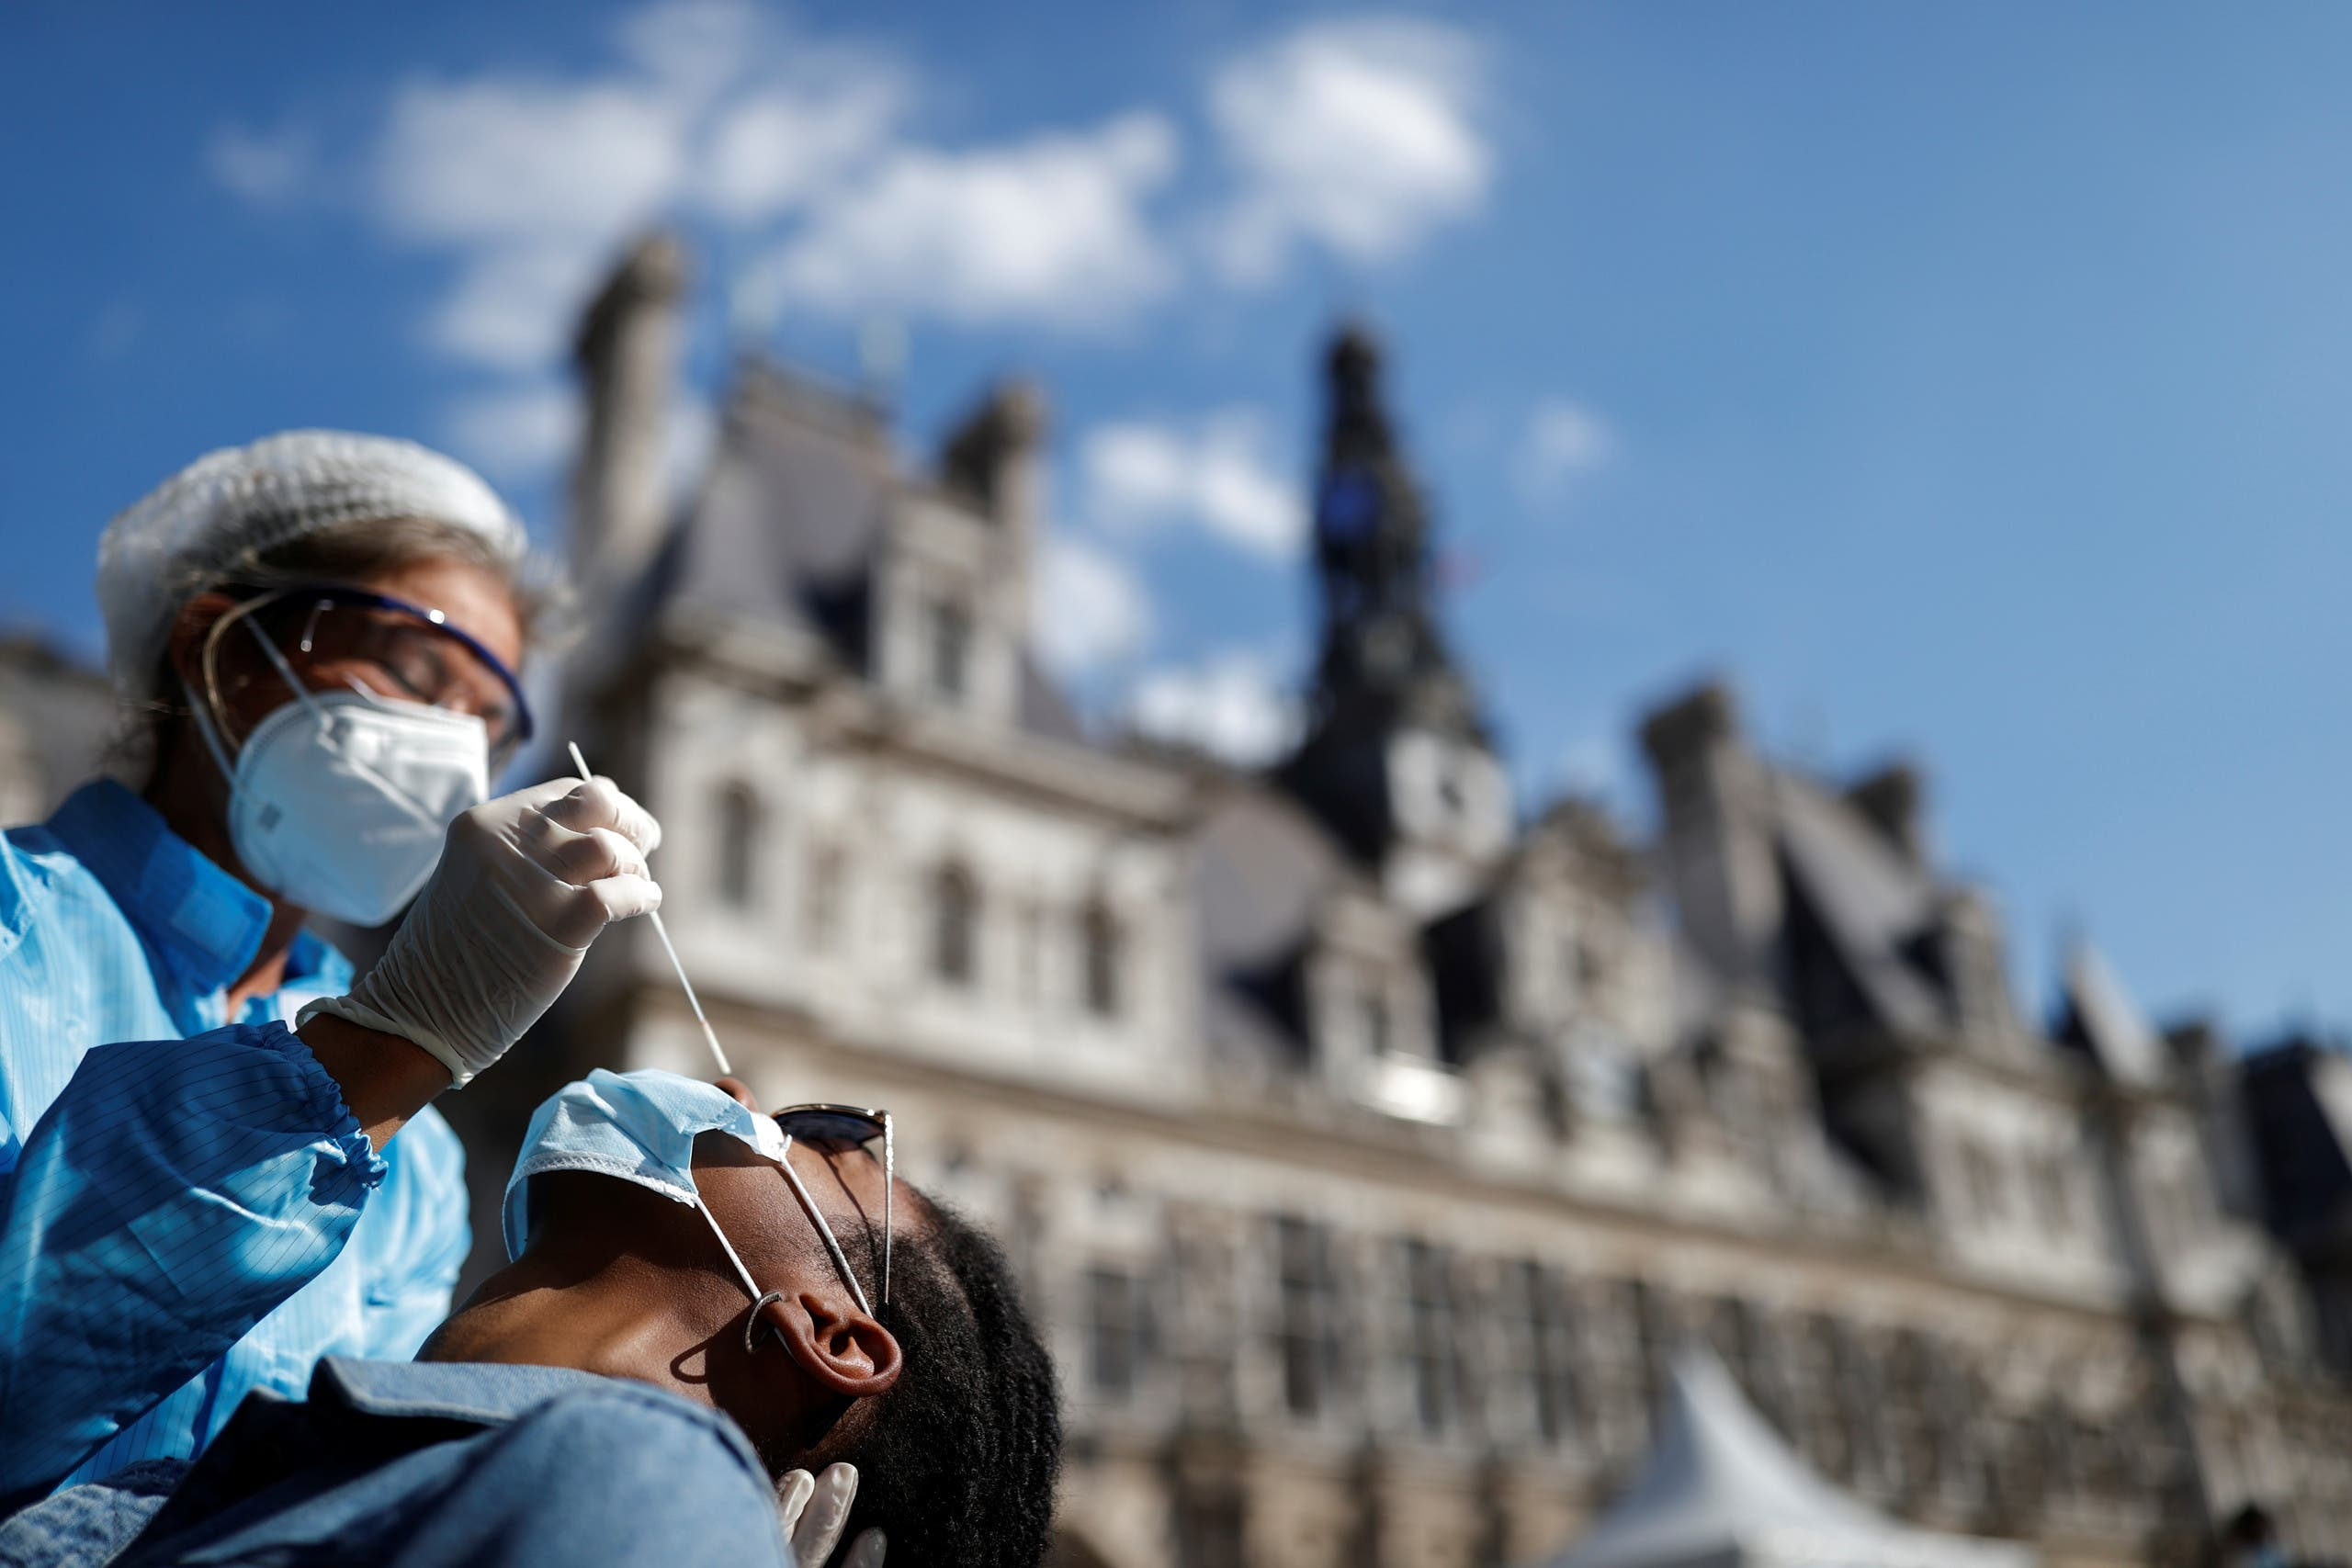 A health worker, wearing a protective suit and a face mask, prepares to administer a nasal swab to a patient at a testing site for the coronavirus disease installed in front of the city-hall in Paris, France, September 2, 2020. (Reuters)